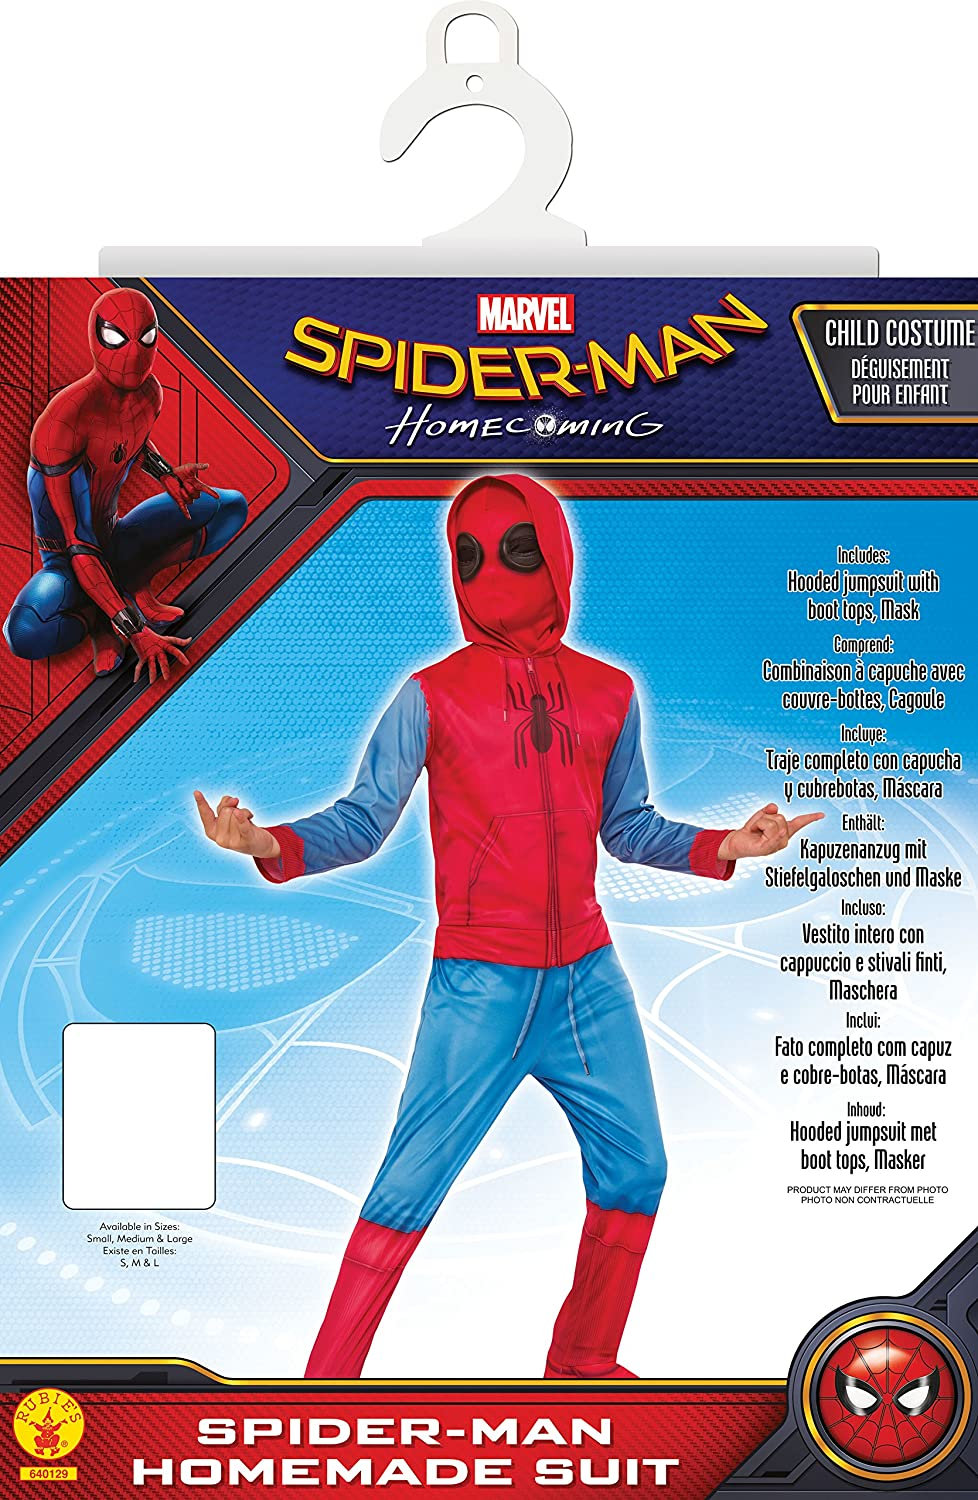 Amazon.com: Rubies Costume Co Spider-Man: Homecoming Childs Homemade Suit Costume, Medium: Toys & Games